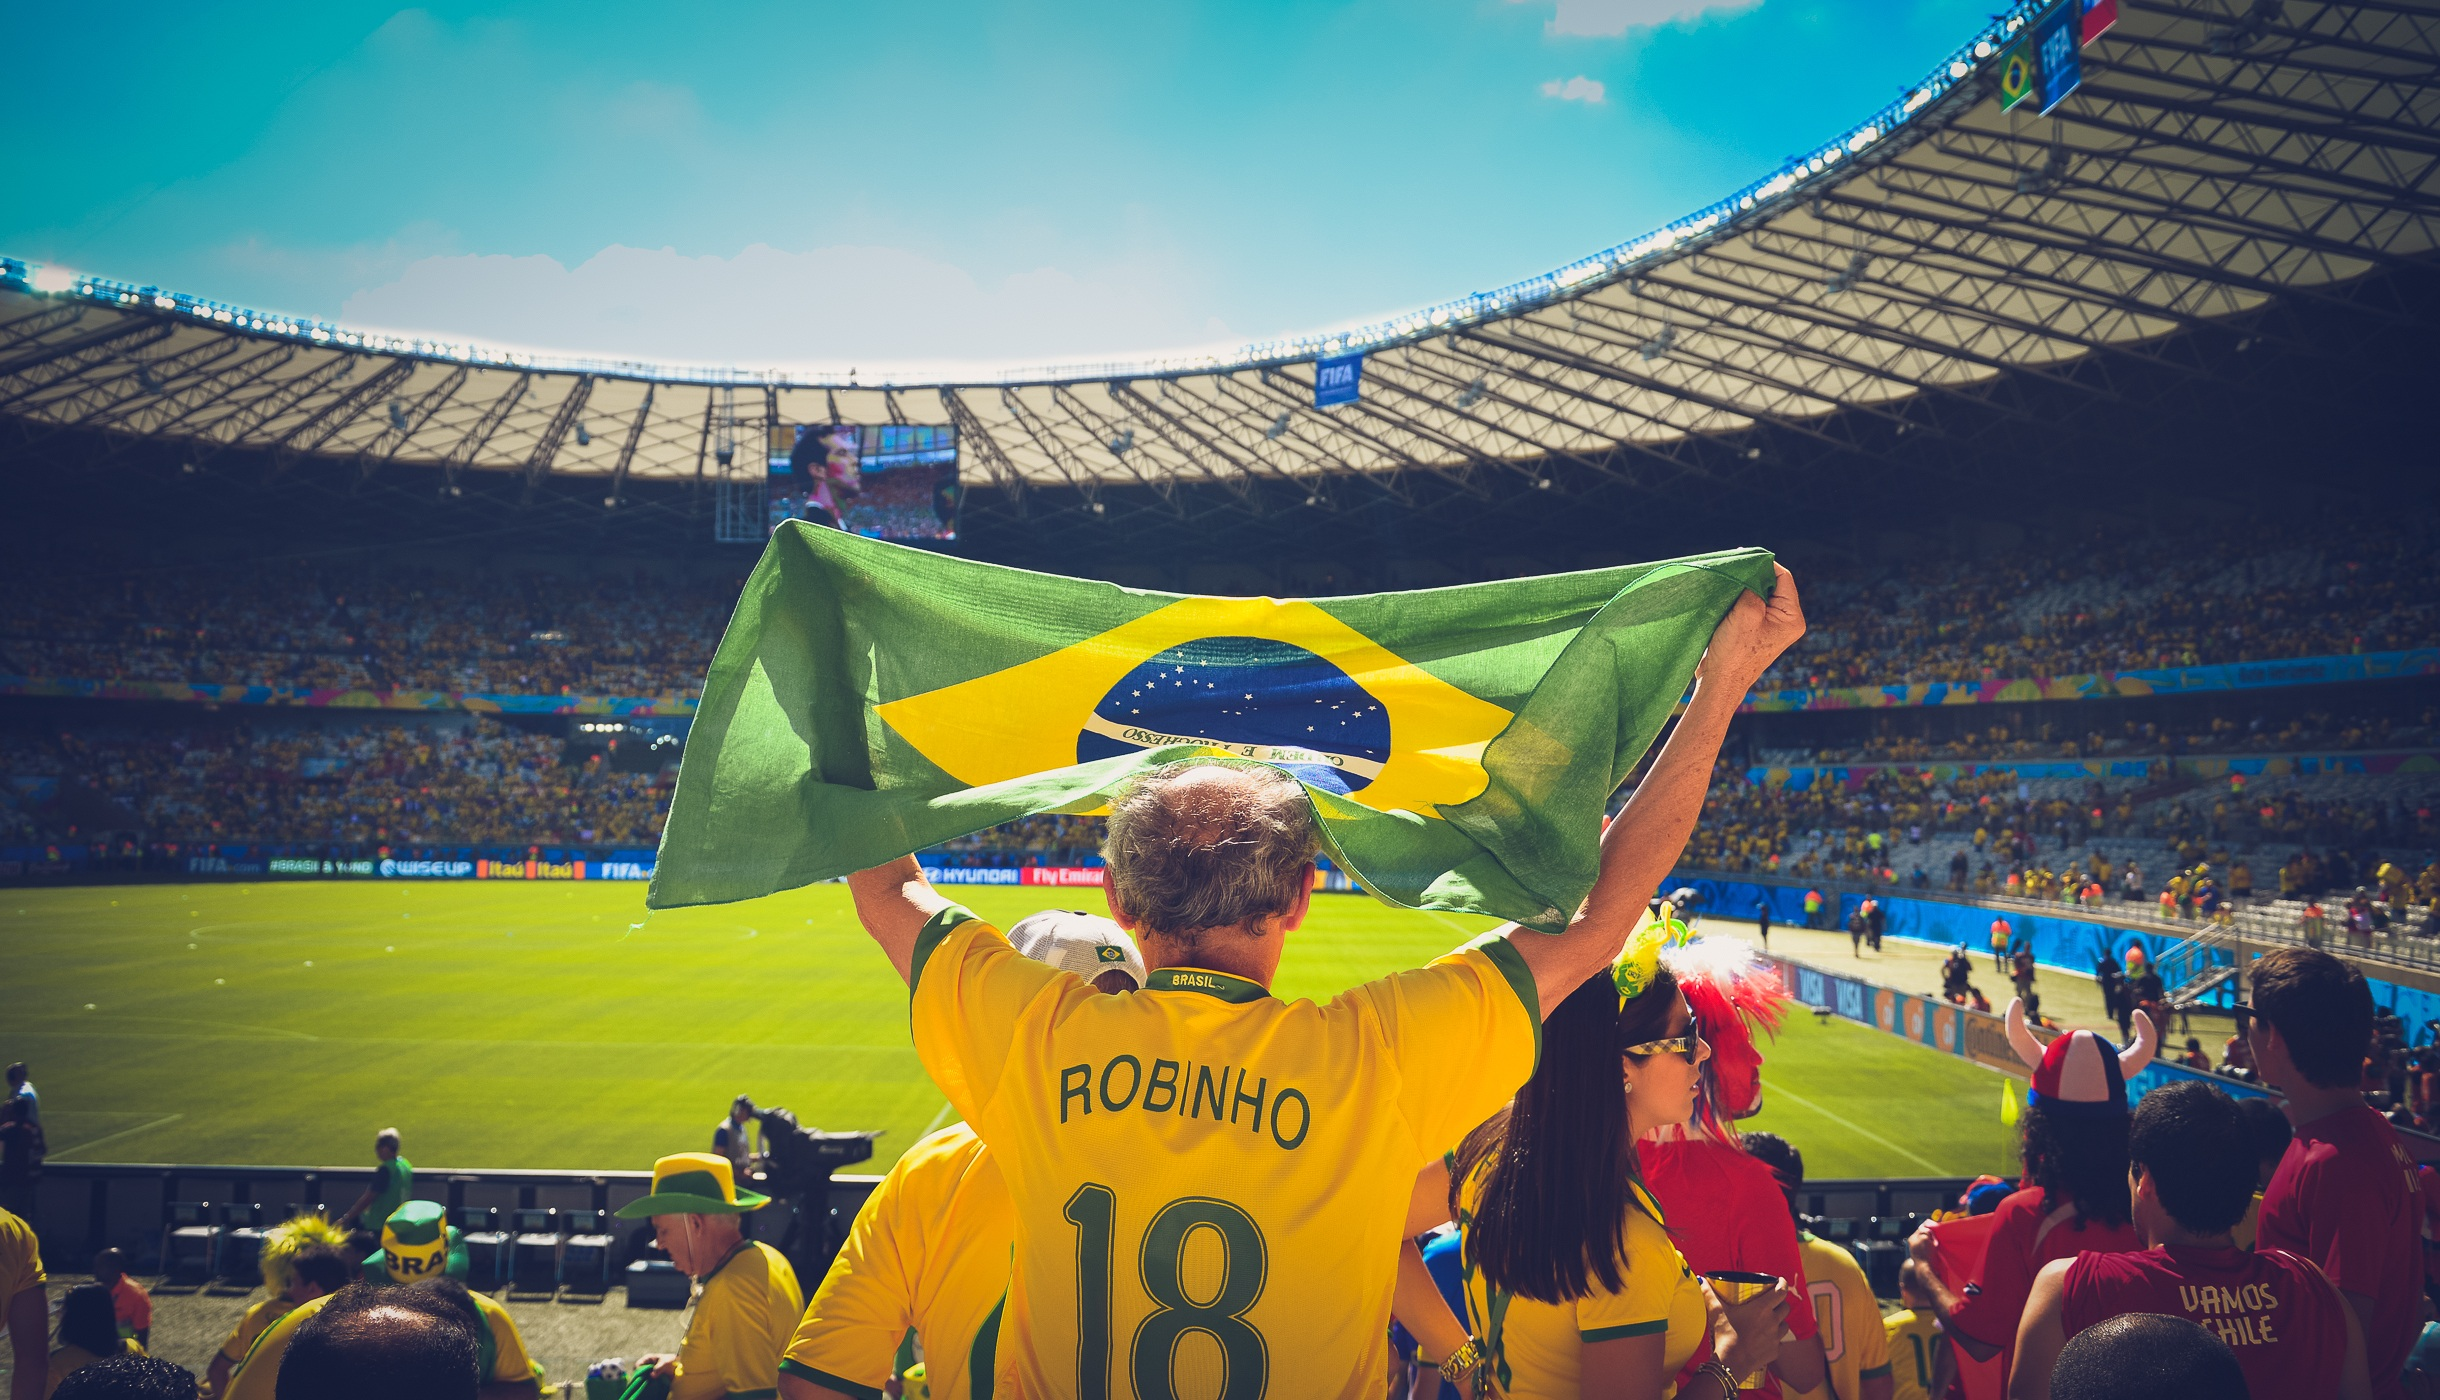 Soccer Fans, Human, People, Soccer, Soccer images, HQ Photo